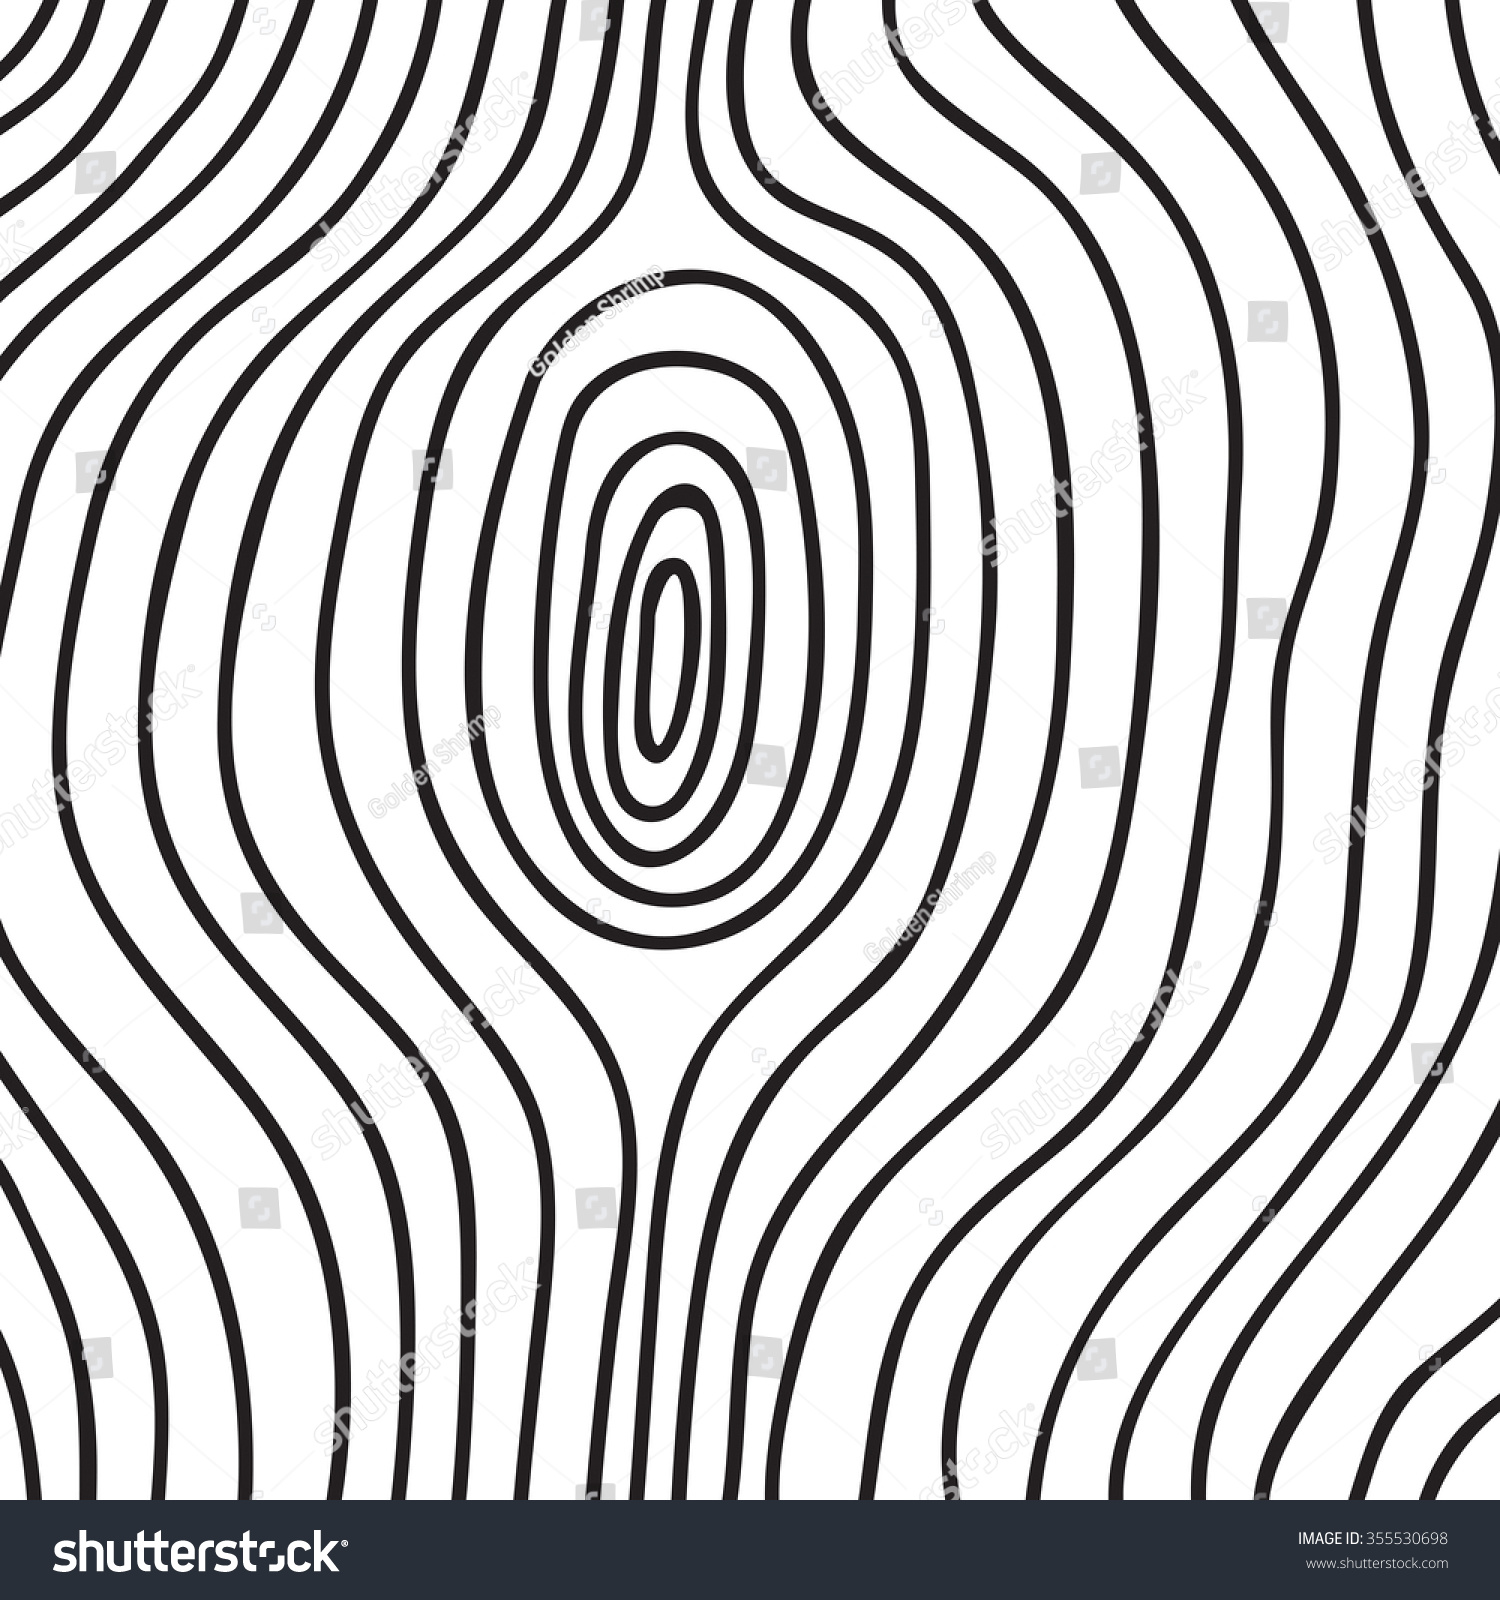 Line Texture Vector : Hand drawn ink line texture abstract stock vector